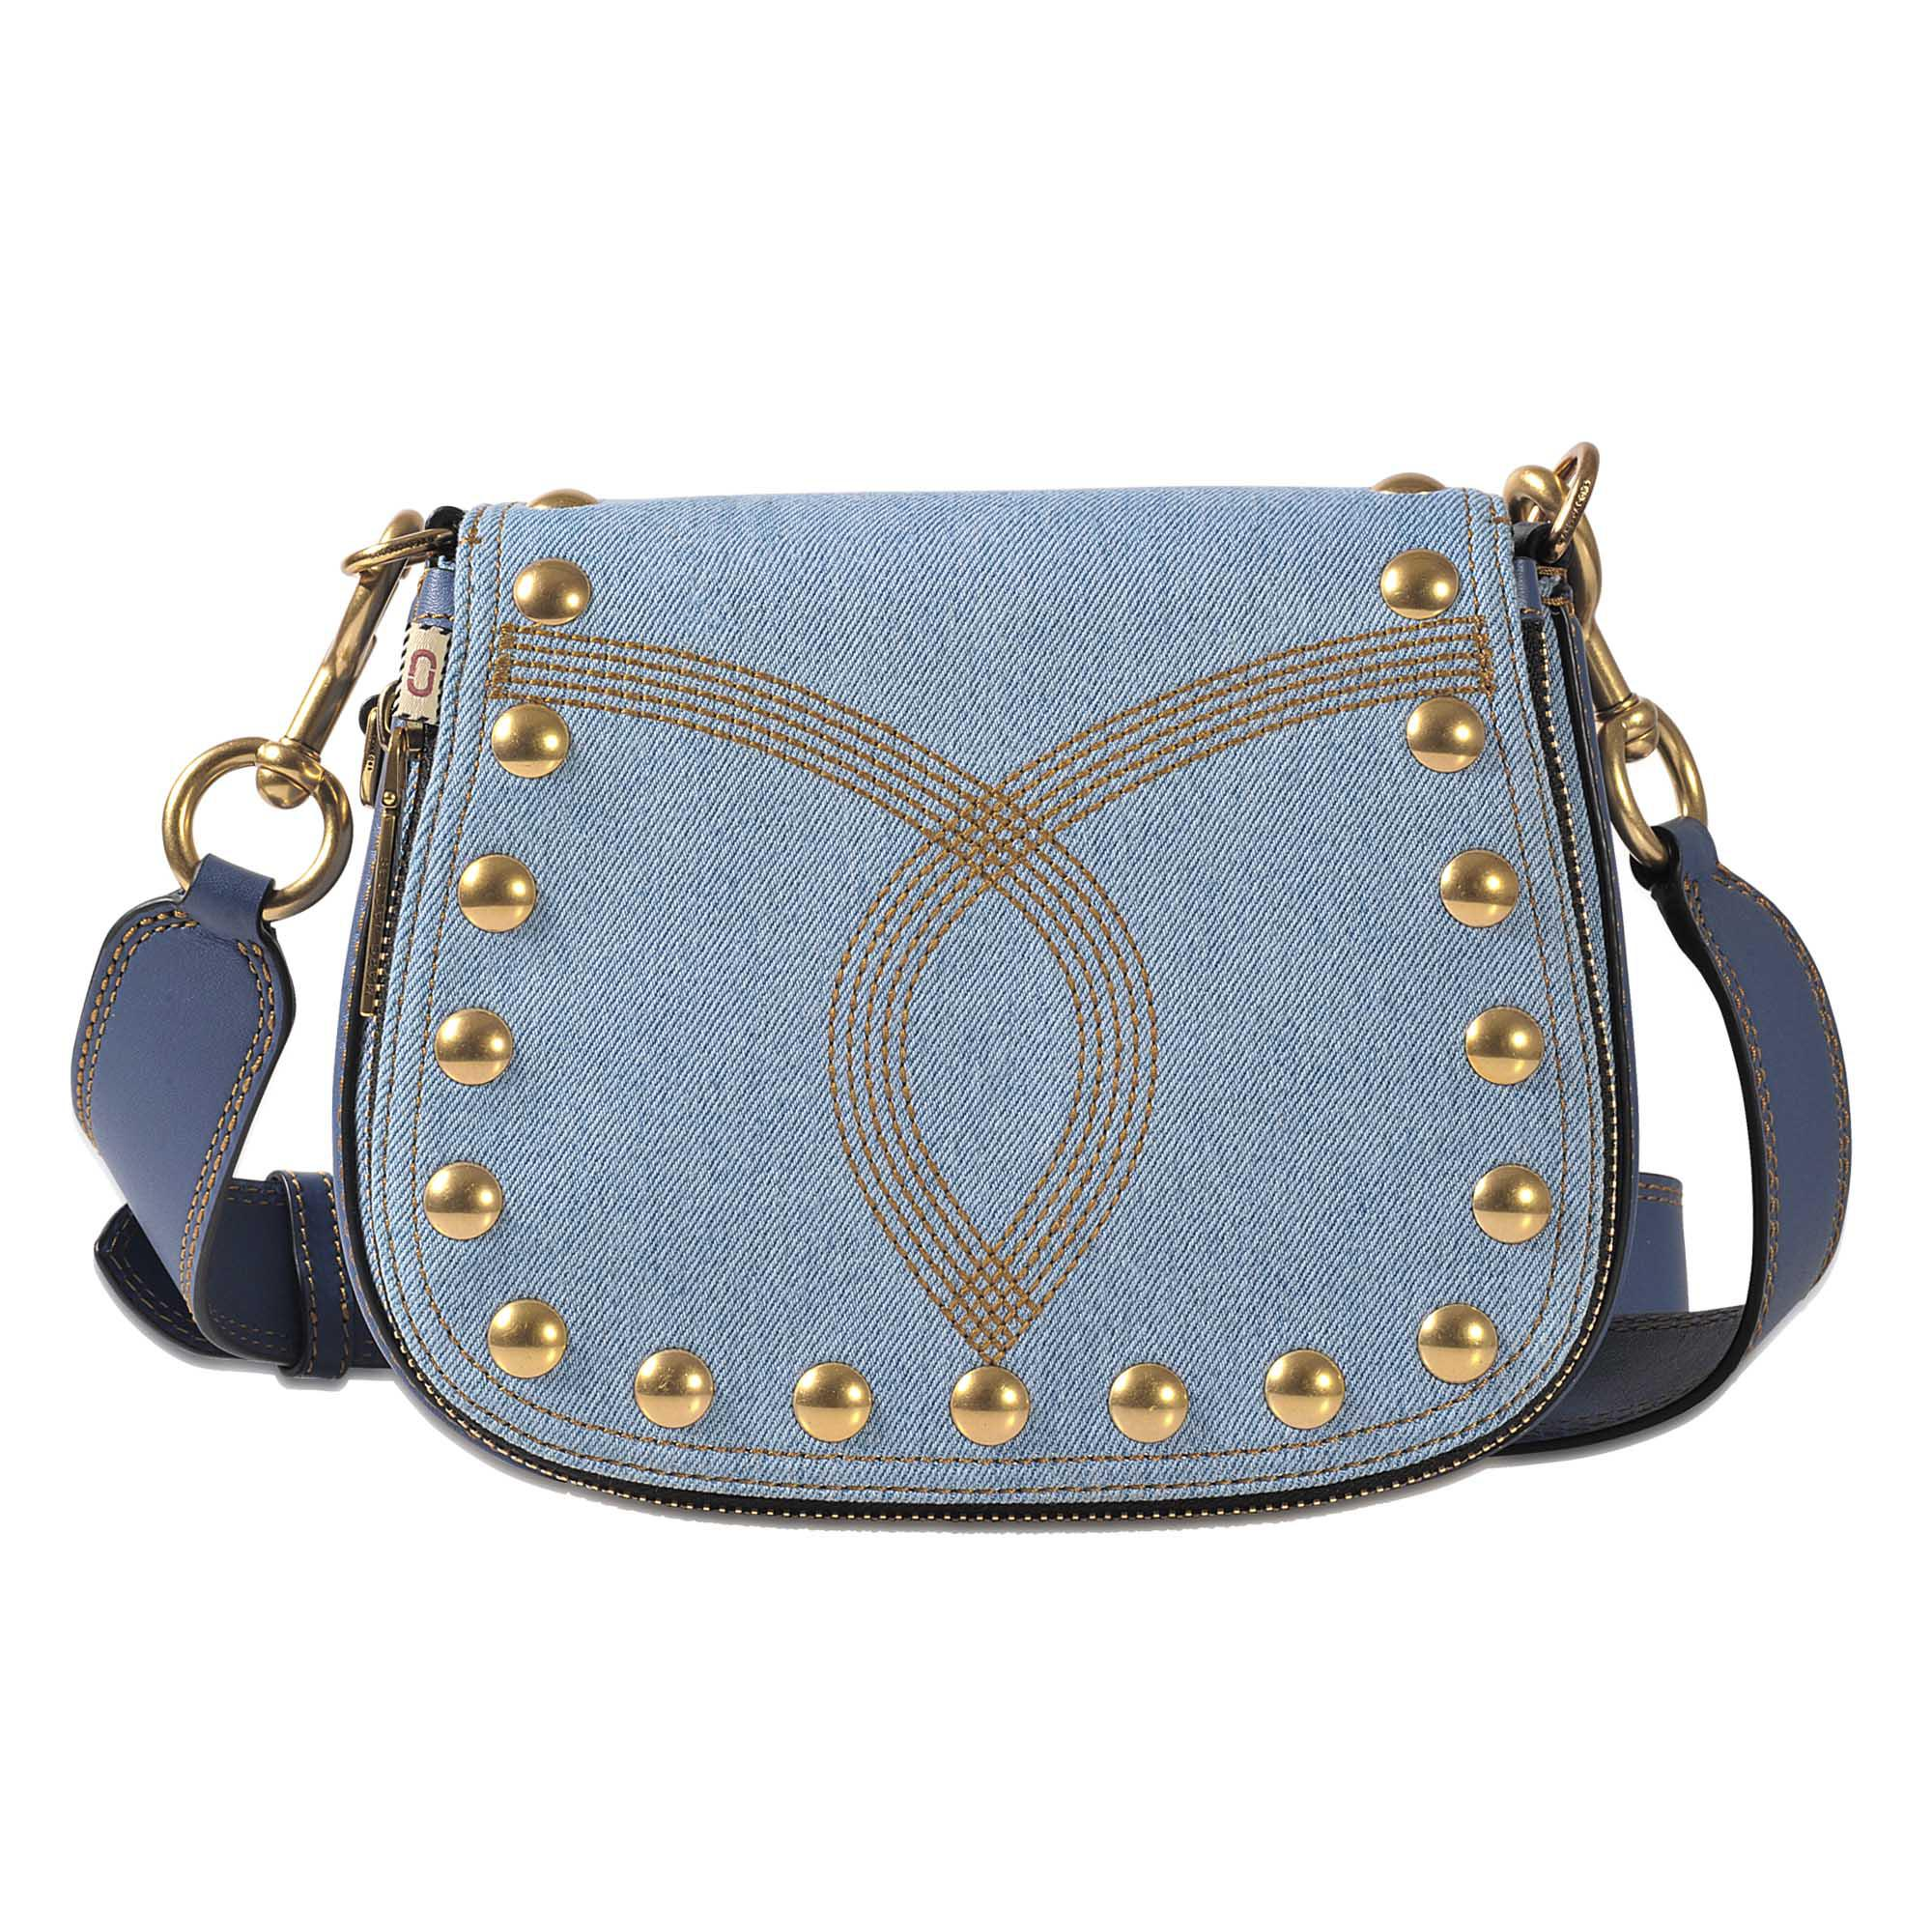 bb504bd64c2e Lyst - Marc Jacobs Denim Small Nomad Bag in Blue